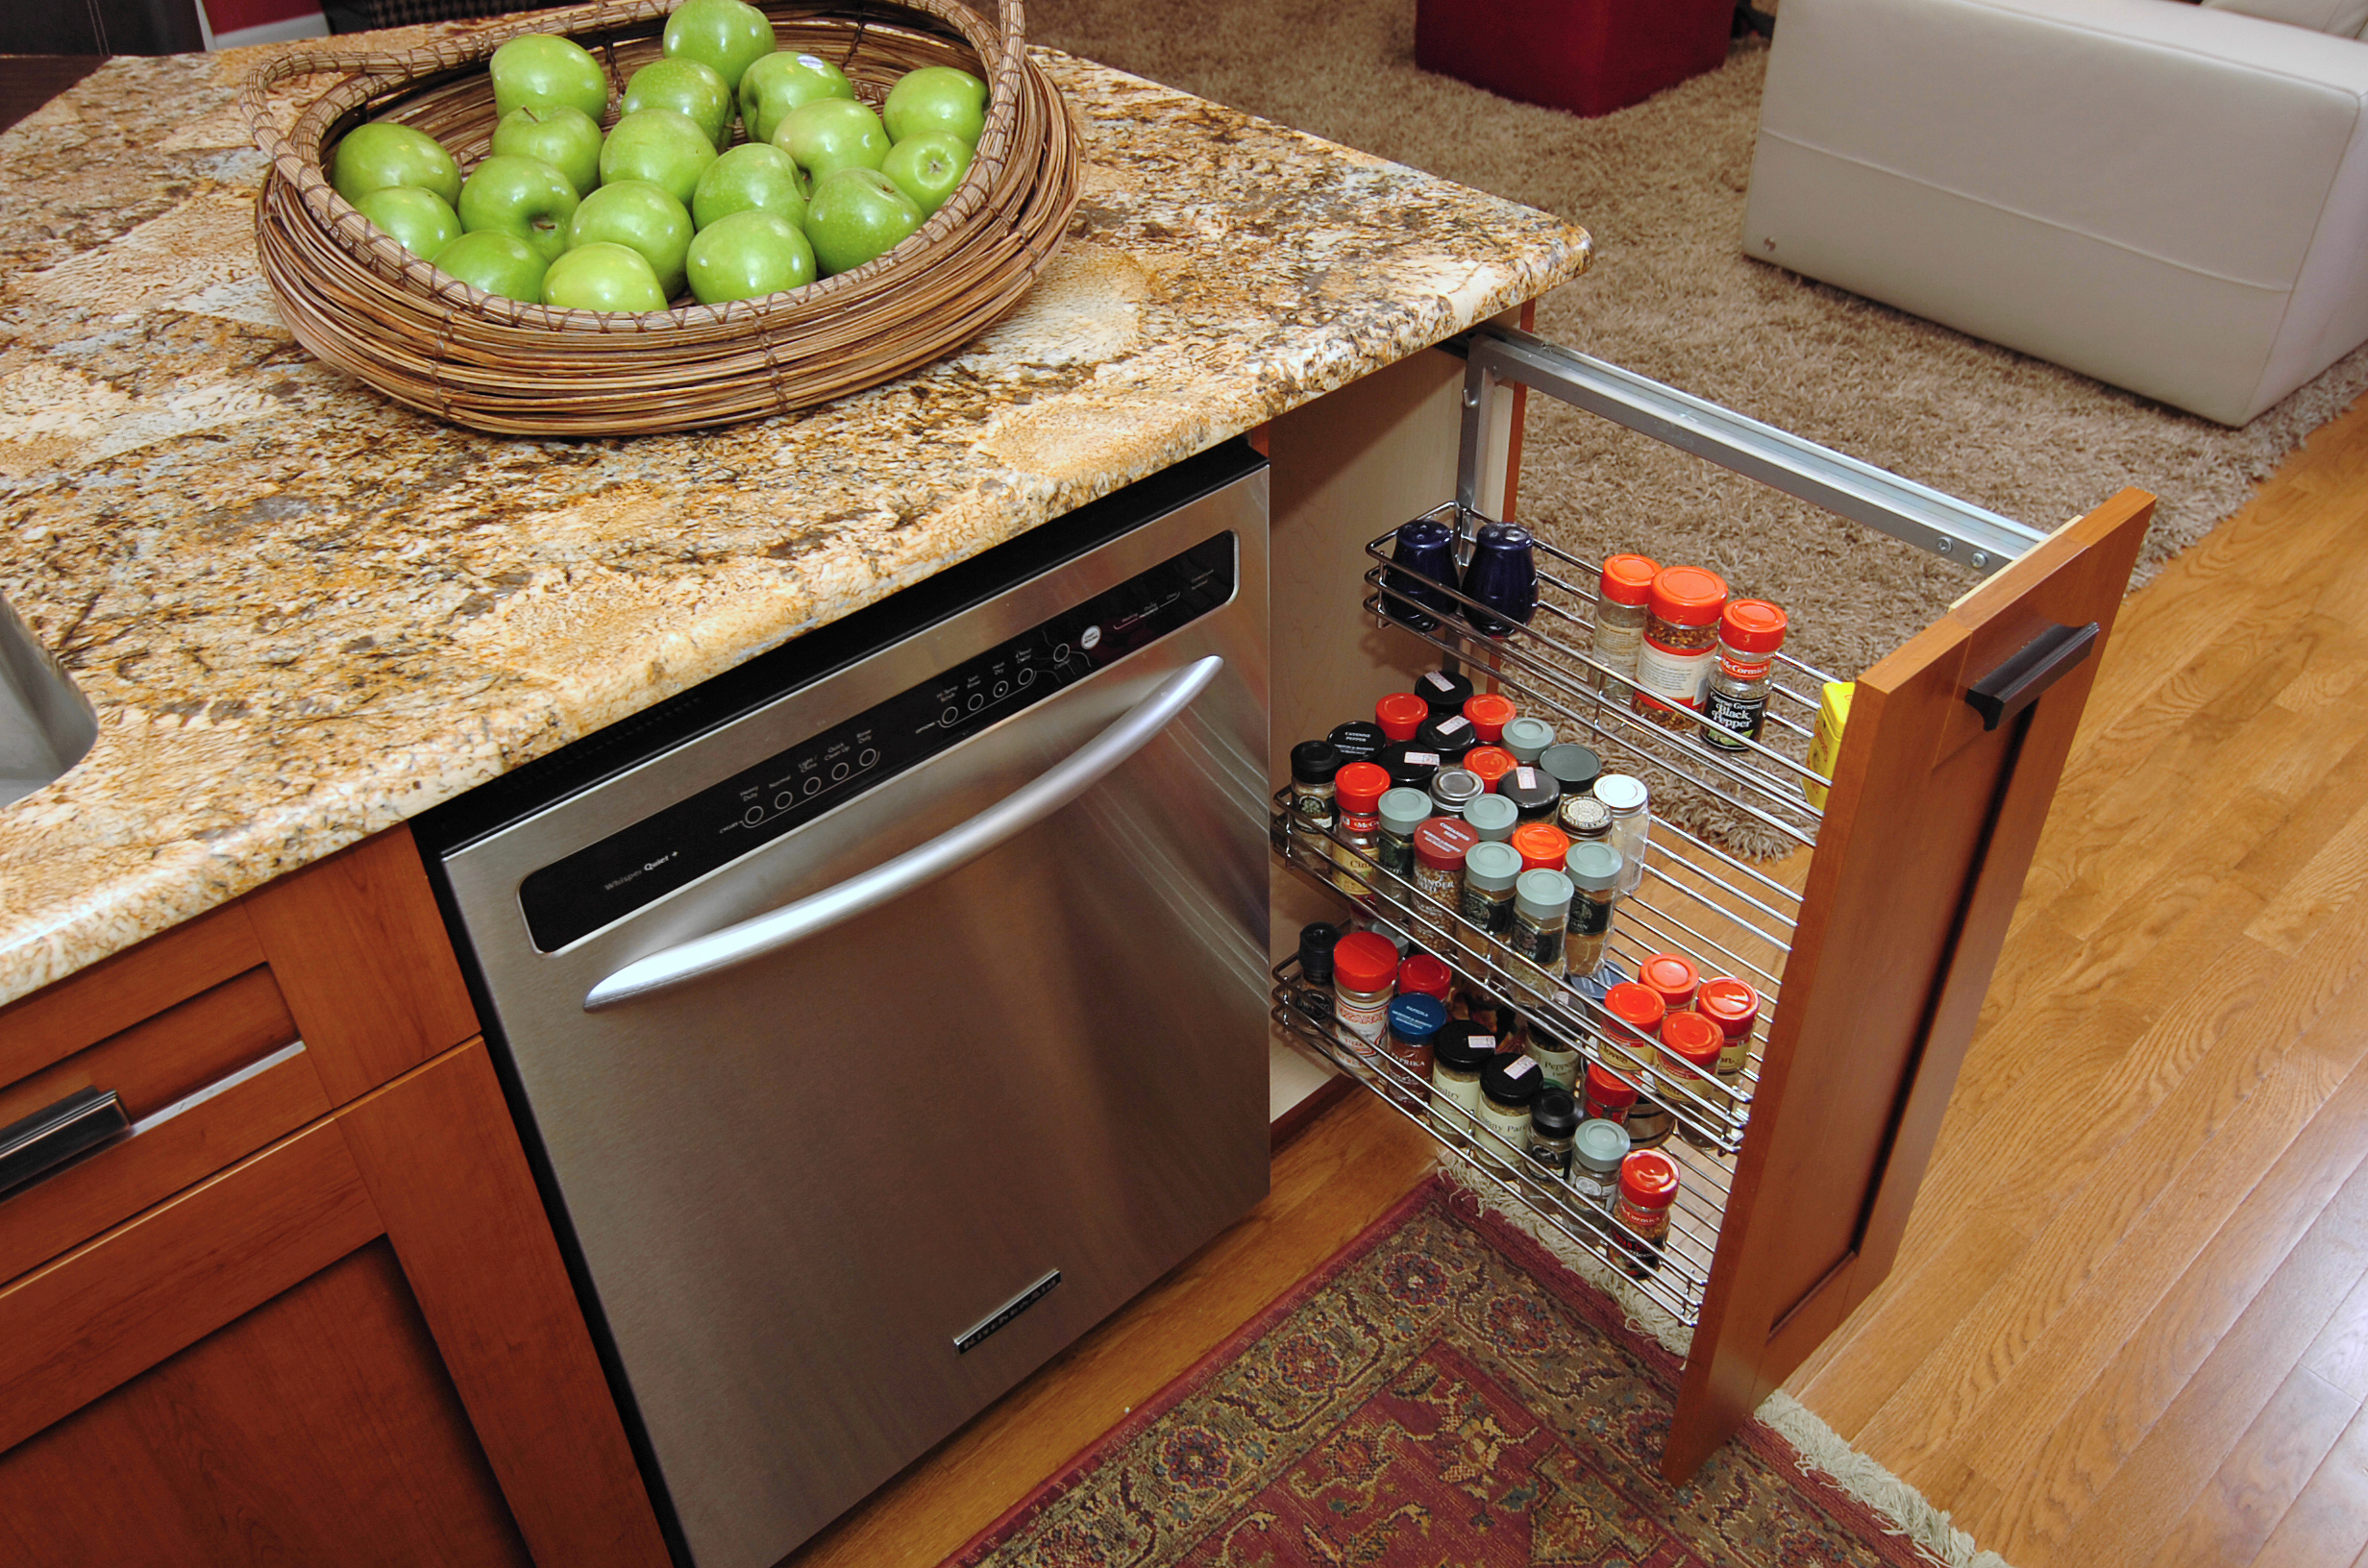 kitchen cabinets pull out spice rack by dishwasher pull out kitchen cabinet Previous Next kitchen cabinets pull out